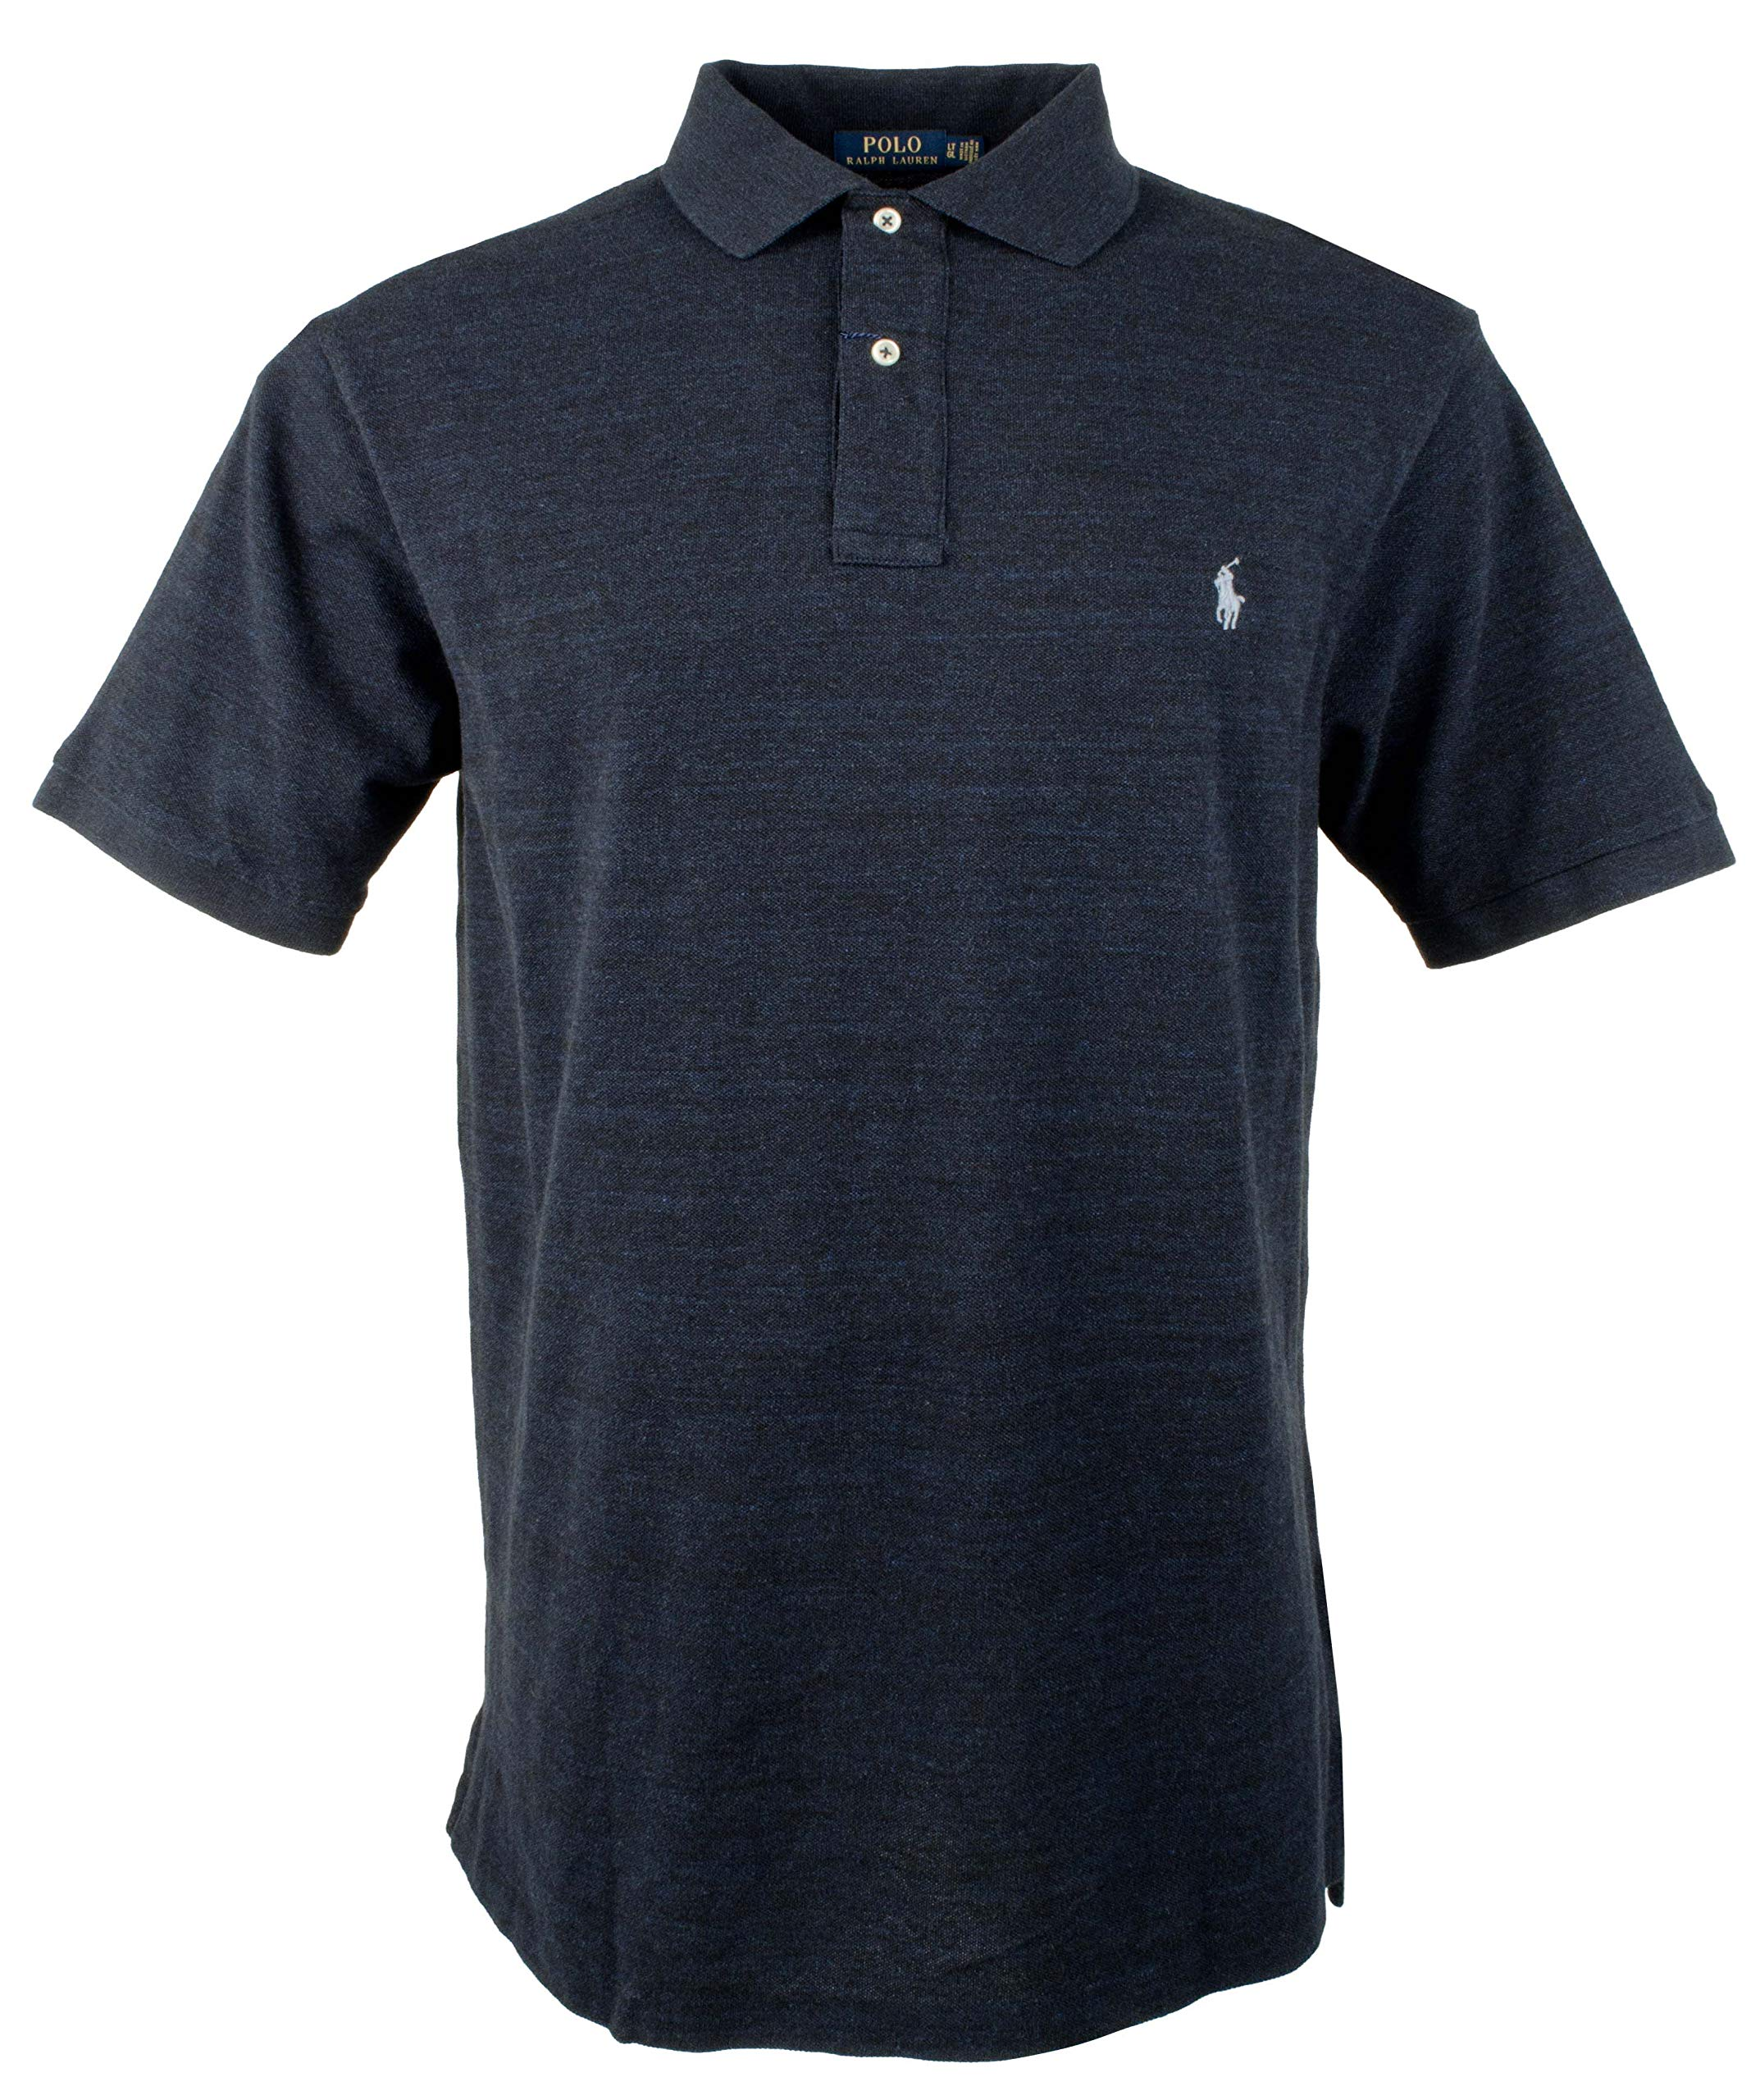 Polo Ralph Lauren Mens Big & Tall Big Tall Weathered Mesh Polo Shirt (3X Tall, Worth Navy Heather)